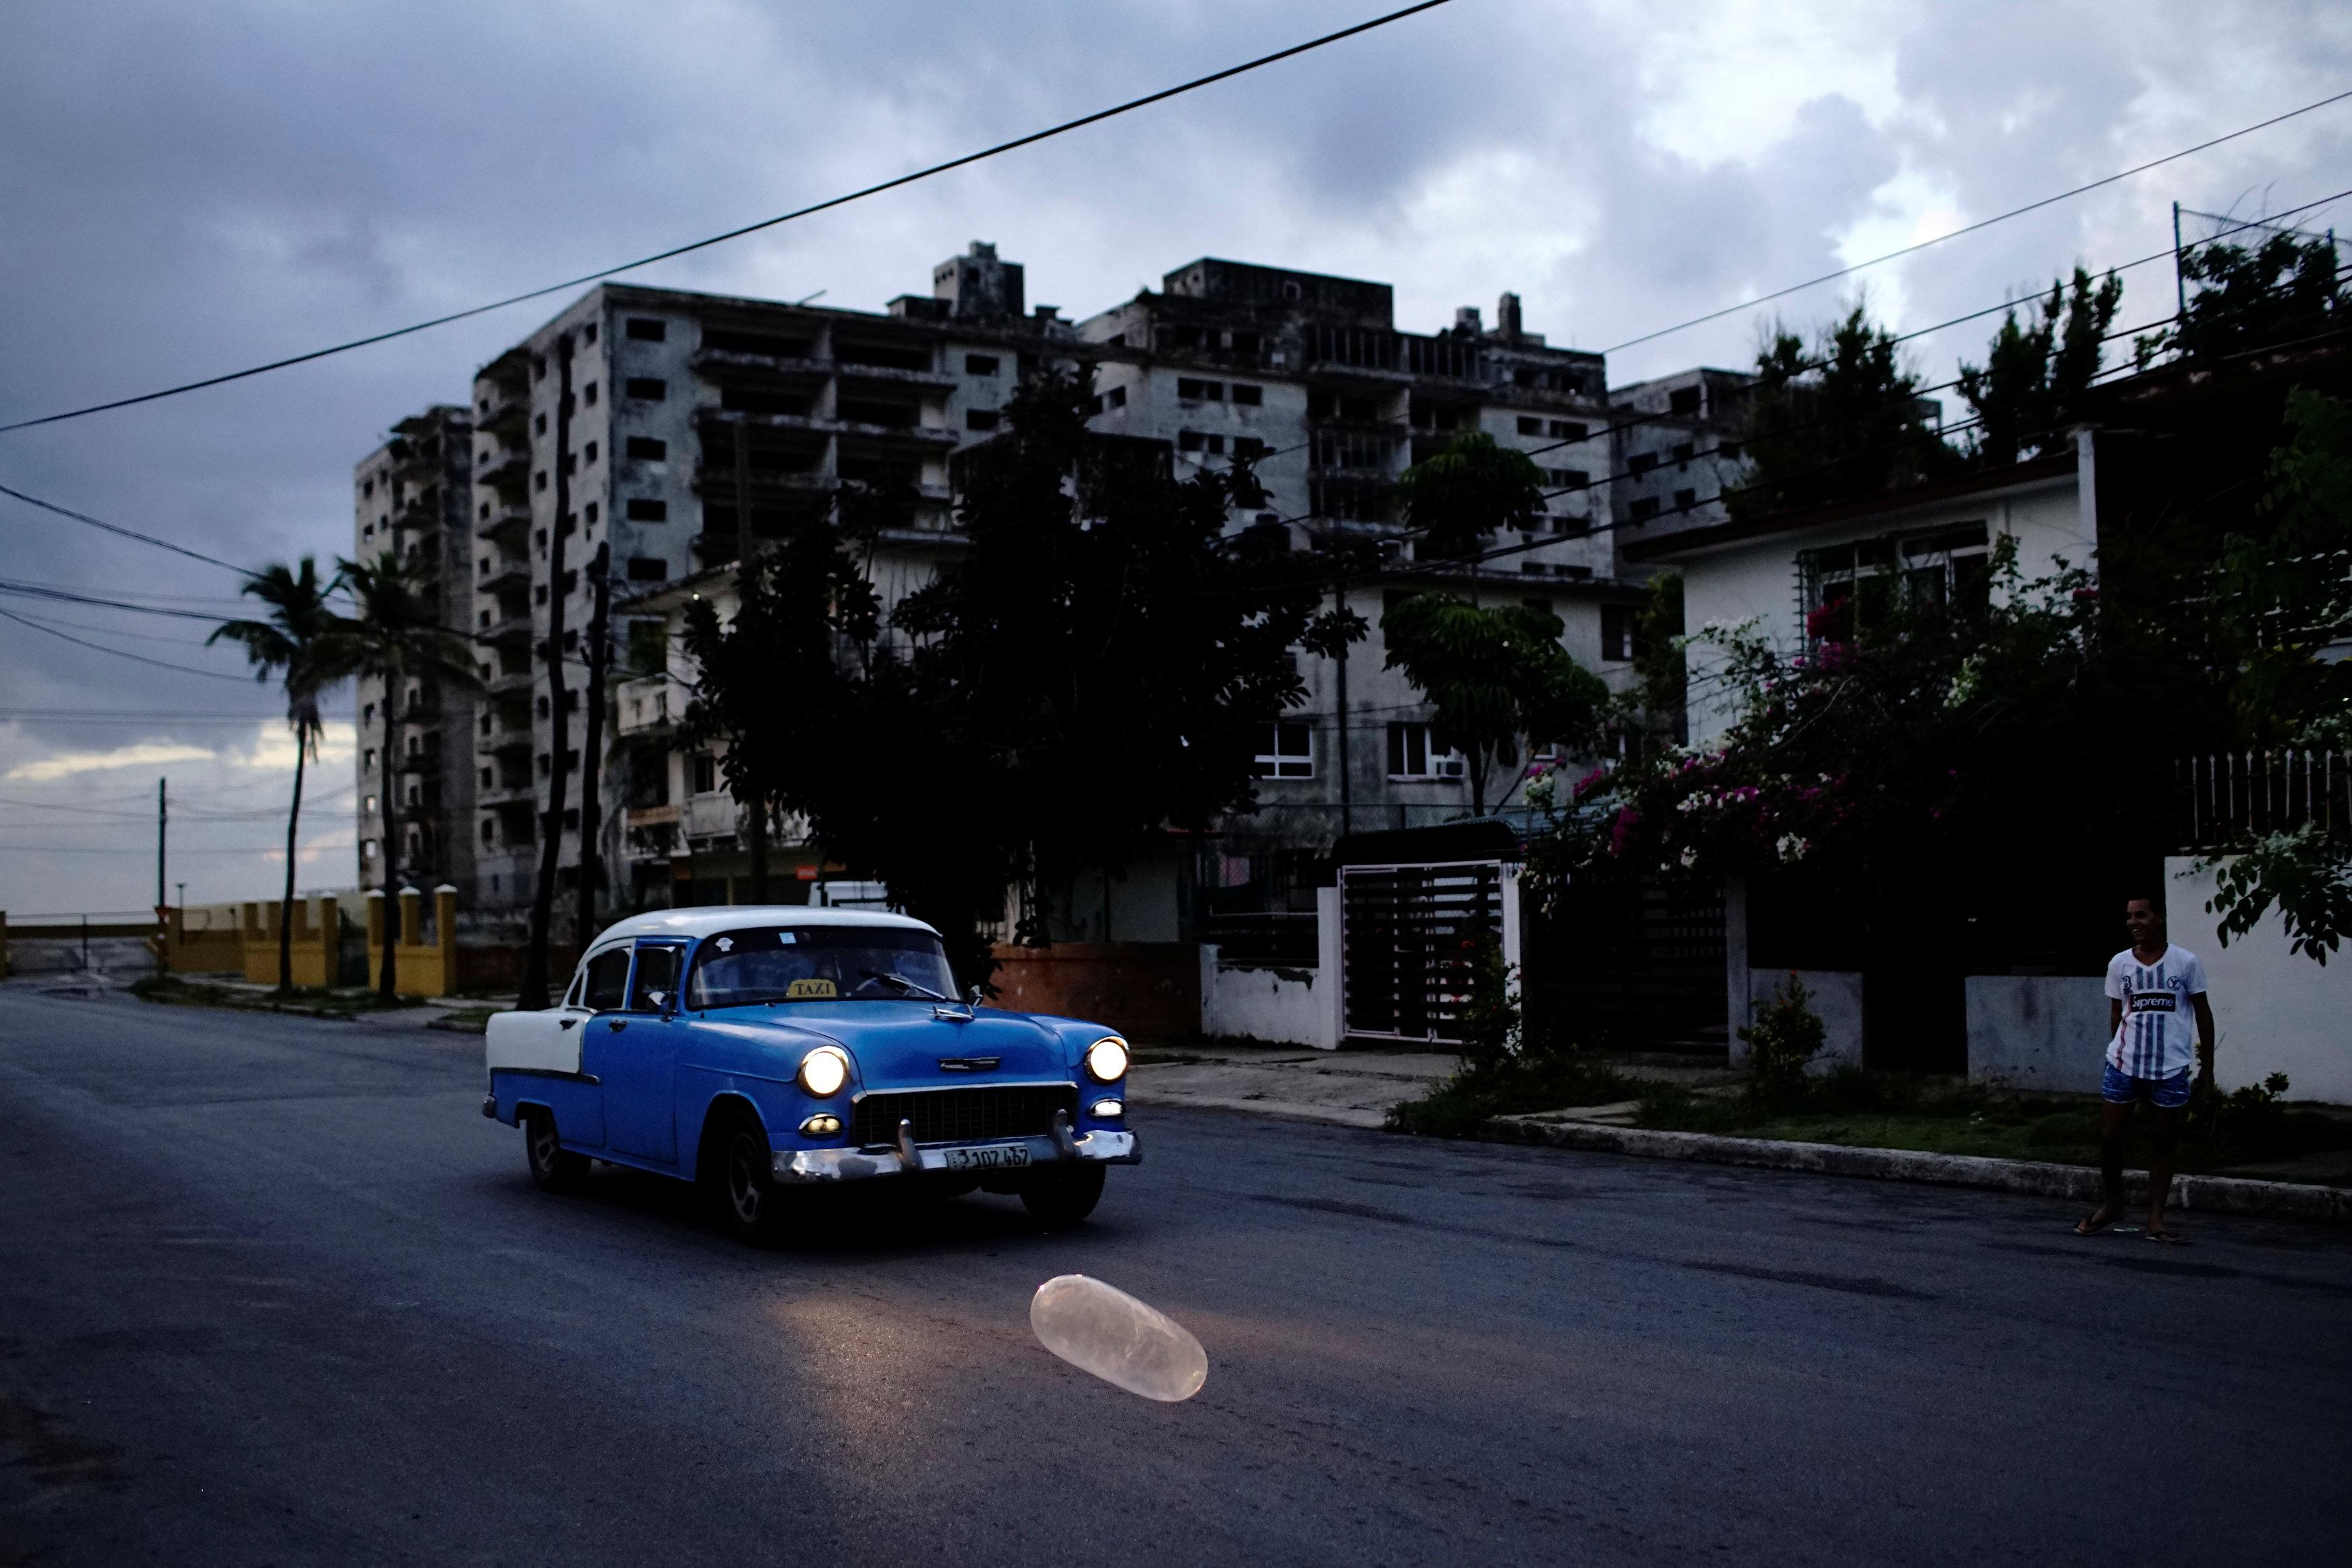 A vintage car passes by an inflated condom on the street in Havana, Cuba, August 27, 2018. Picture taken on August 27, 2018. Alexandre Meneghini